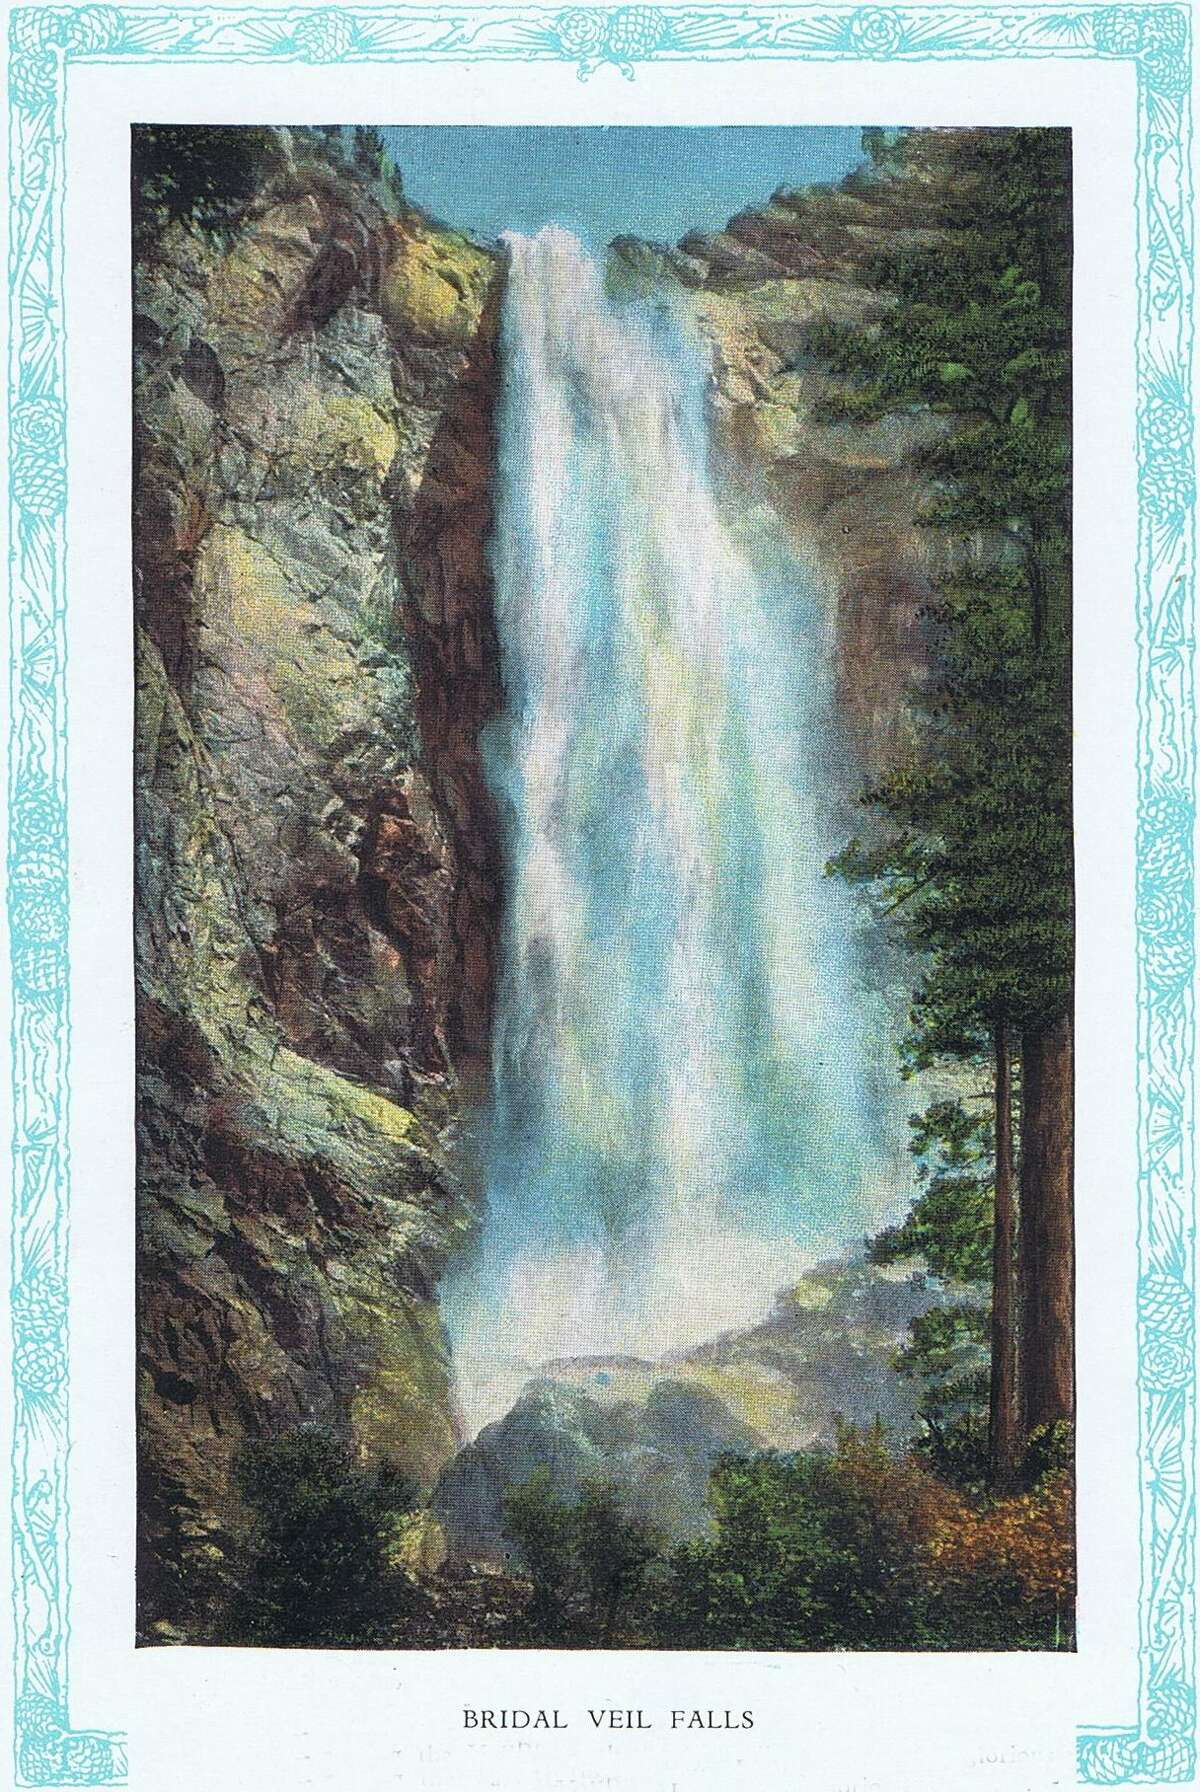 Bridal Veil Falls measures 30 feet at the top and has an unbroken fall of 620 feet, Yosemite National Park souvenir brochure from the early 1920's.